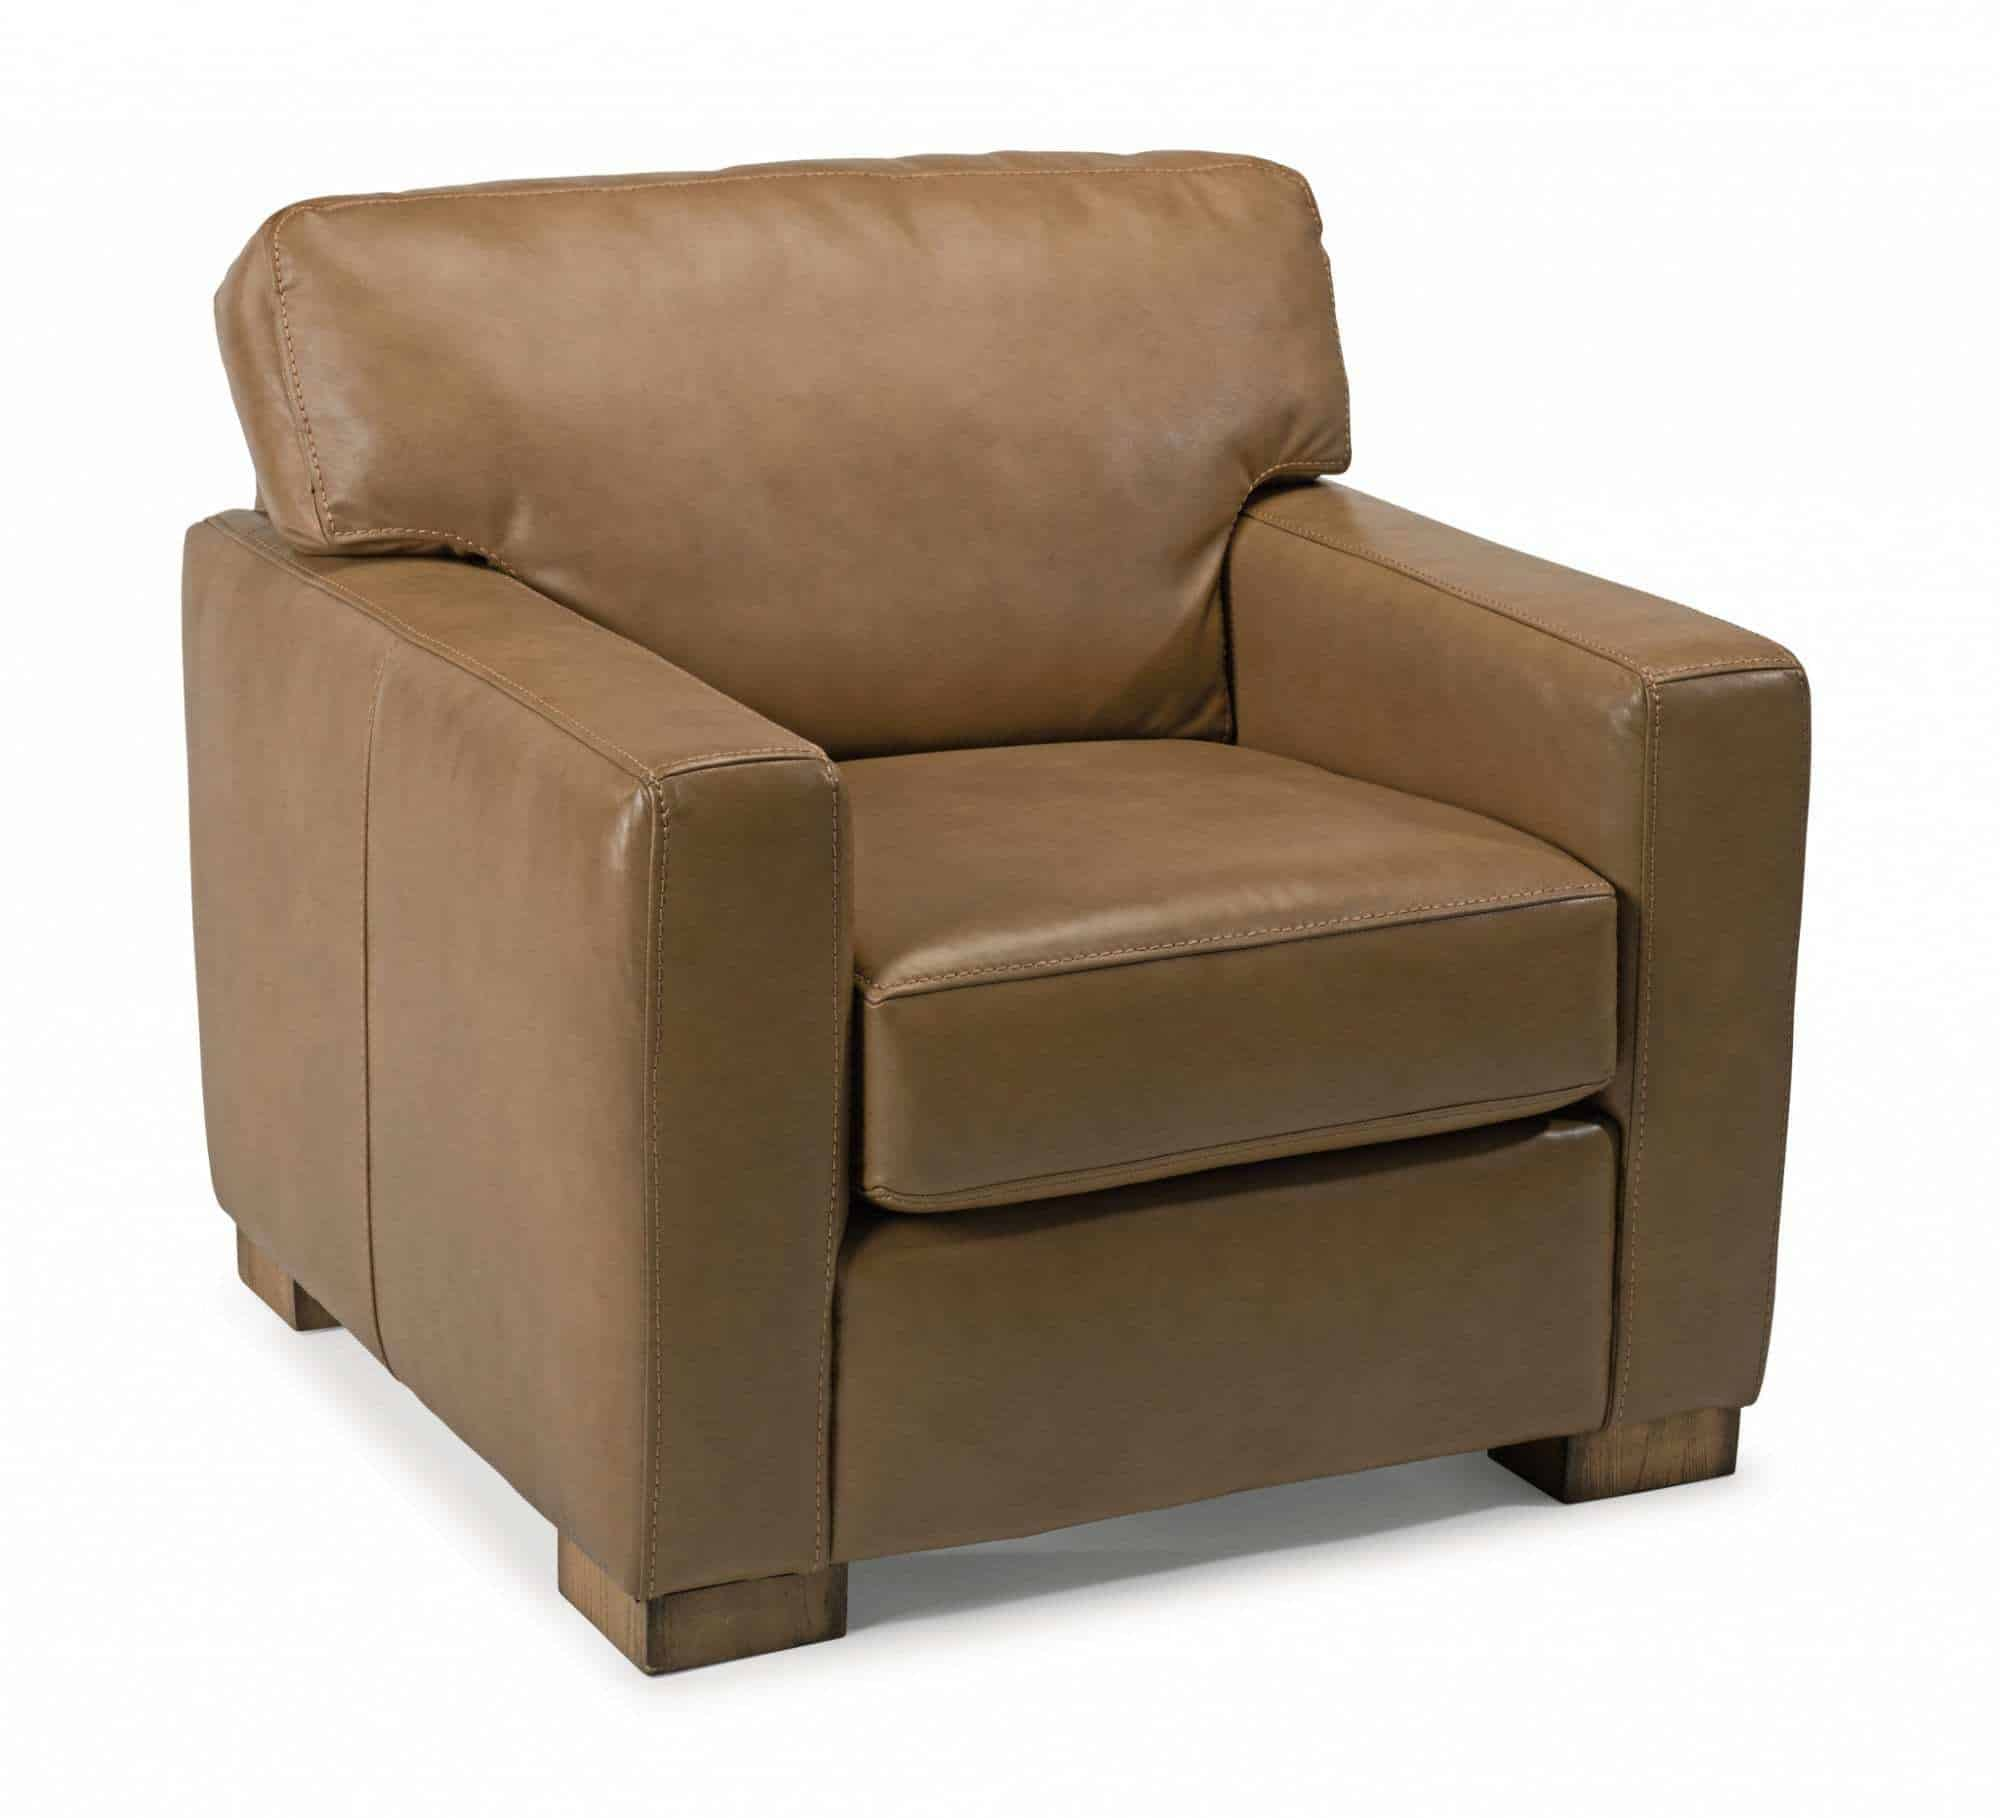 Bryant - Used Office Furniture Chicago Store: Cubicle Concepts